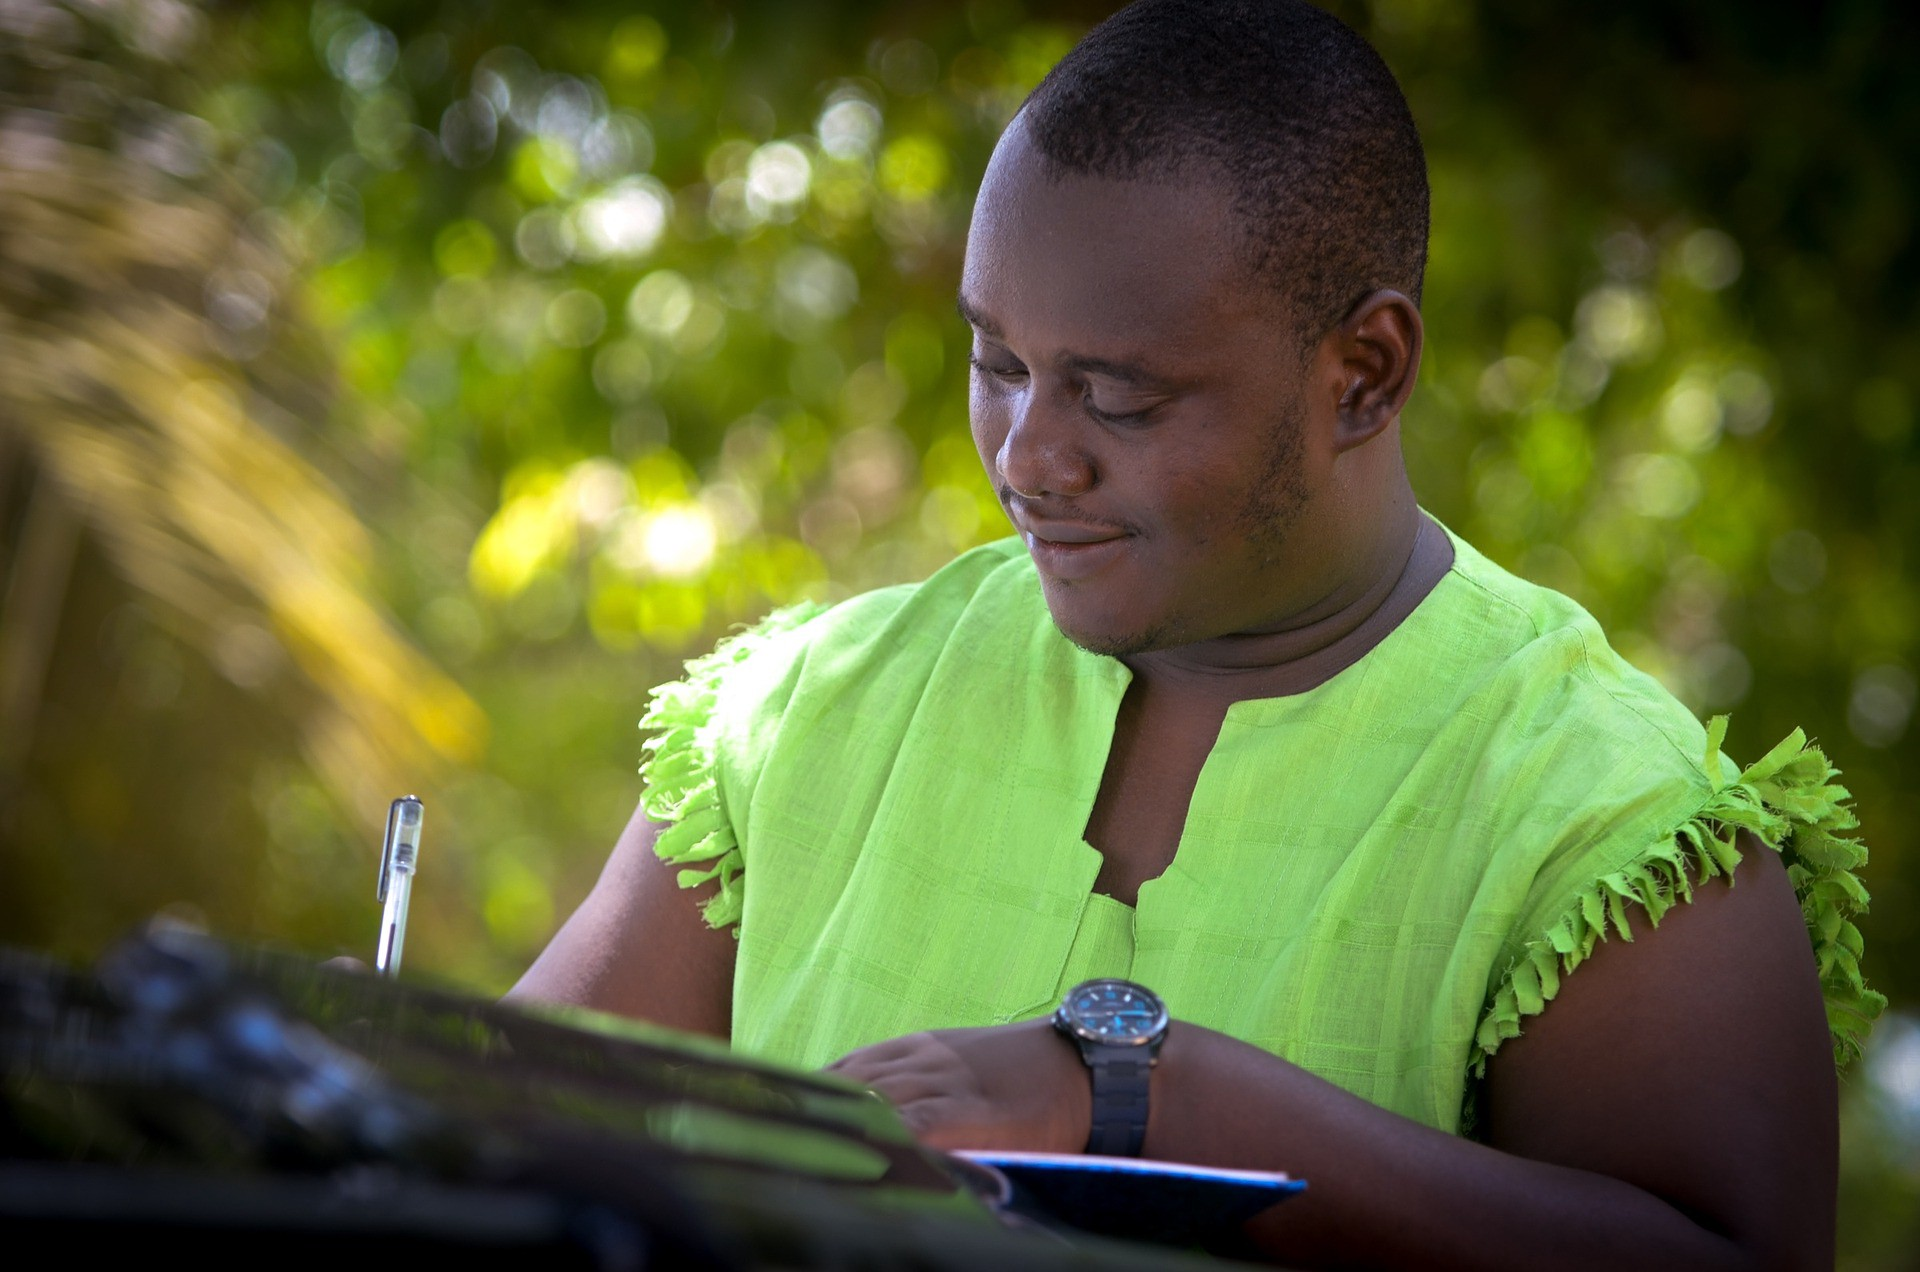 Black man in bright green shirt with frills writing.